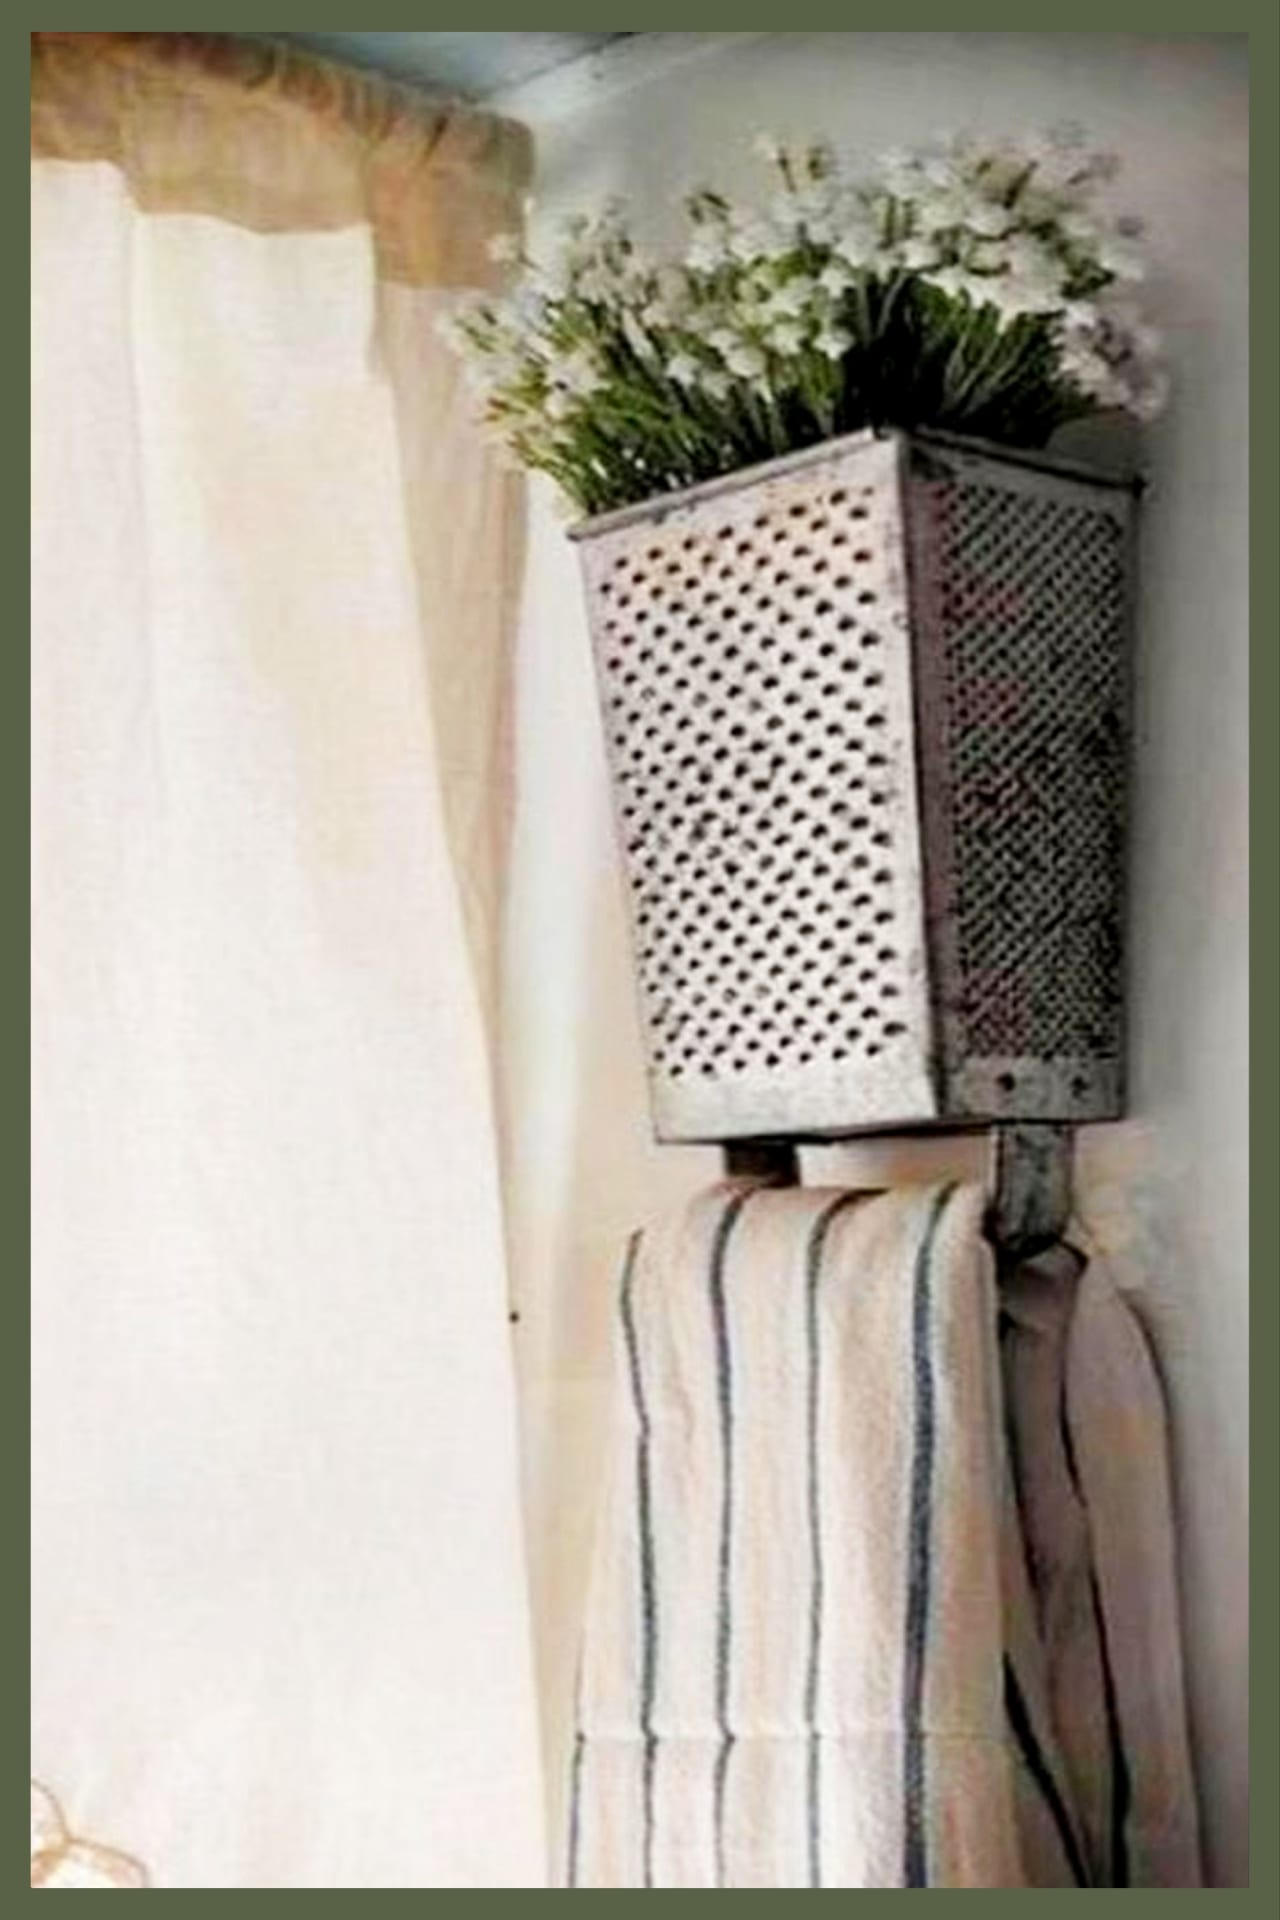 Farmhouse decor on a budget - cheap ways to decorate a farmhouse kitchen to get farmhouse look on a budget